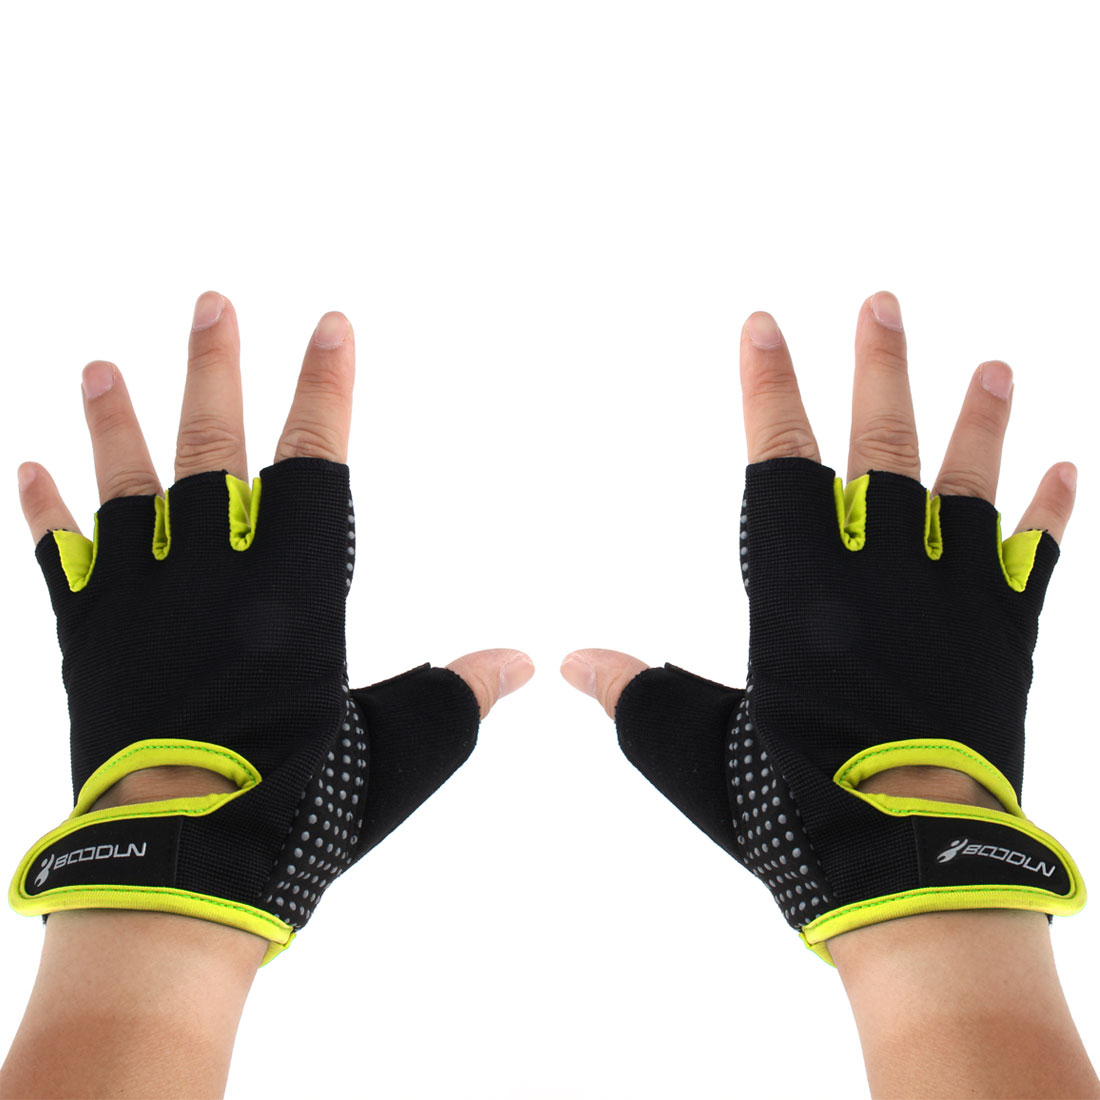 BOODUN Authorized Gym Workout Weight Lifting Training Adjustable Anti Slip Breathable Fitness Half Finger Gloves Yellow M Size Pair